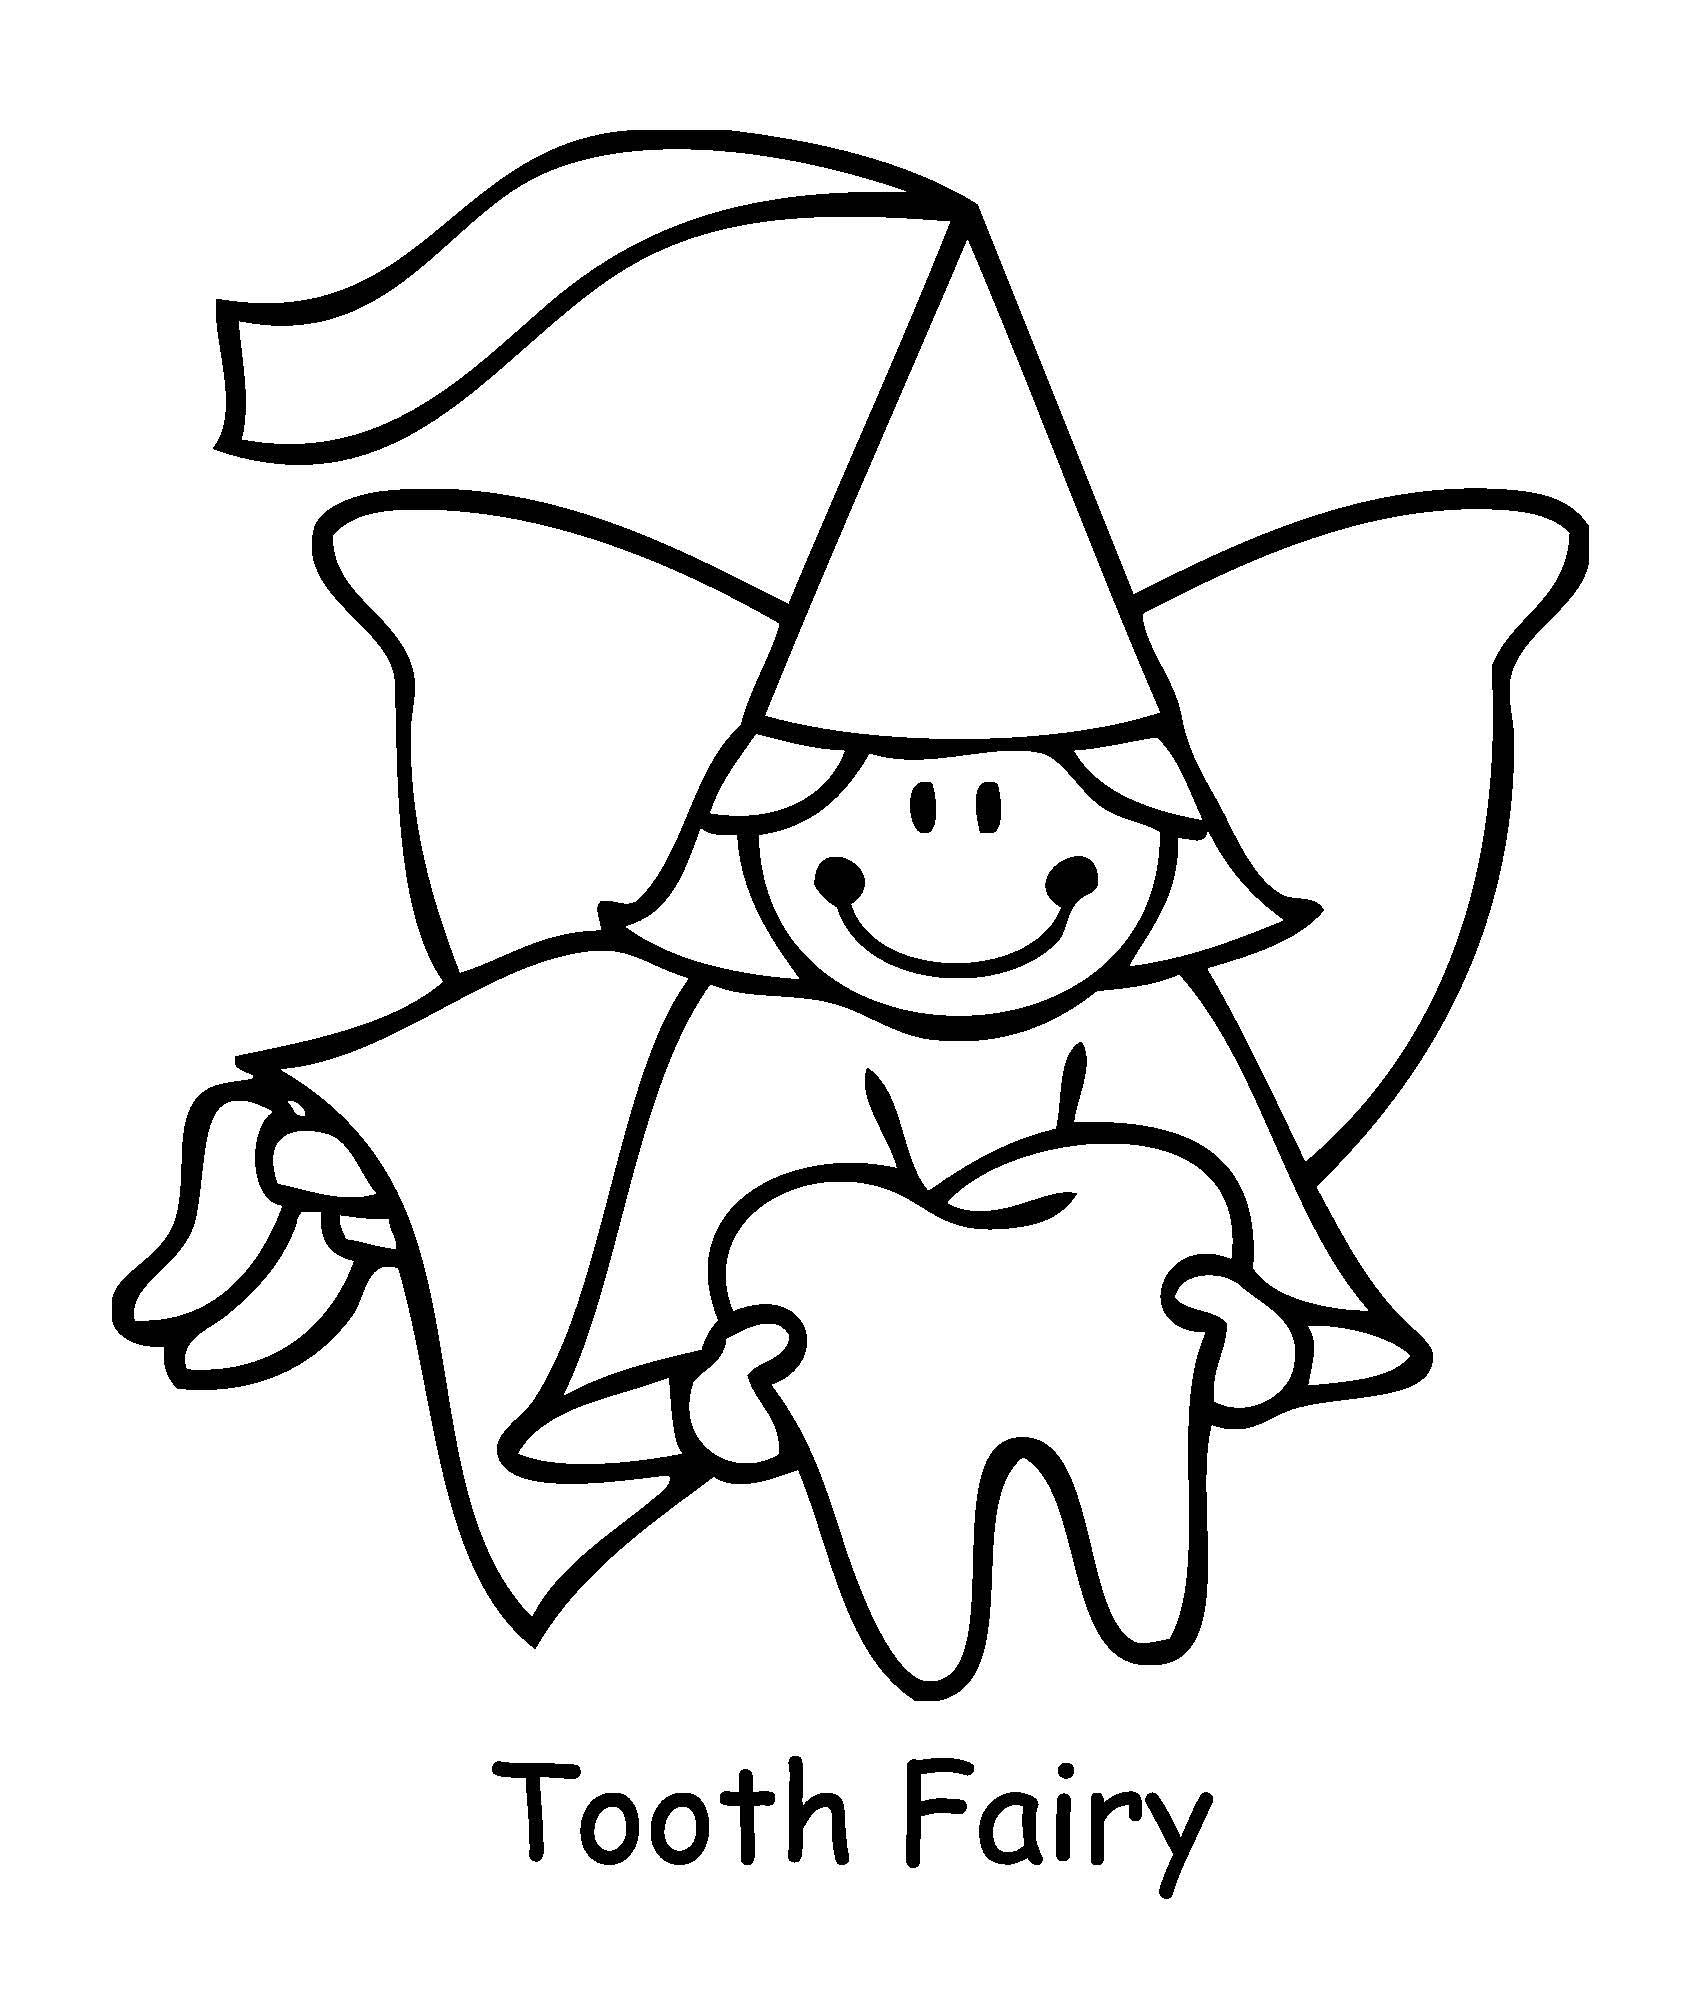 Dental Coloring Pages for Kids Gallery 12d - Free For kids